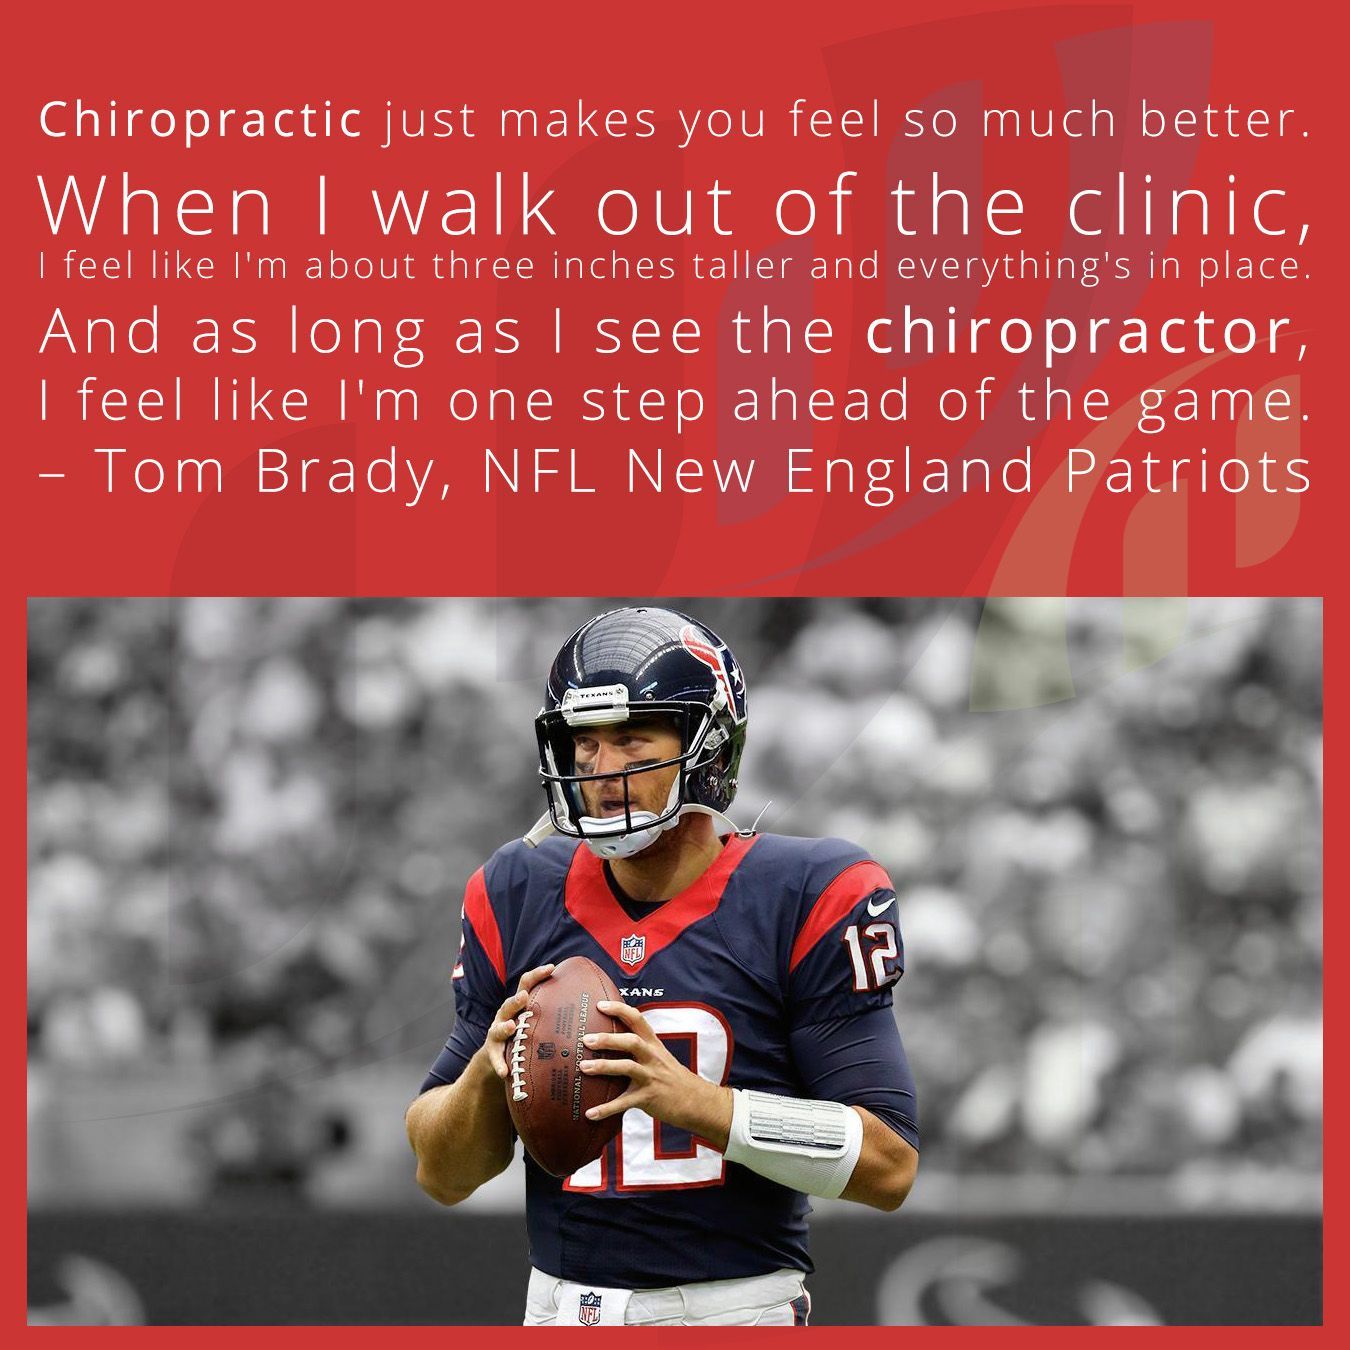 Chiropractic just makes you feel so much better. When I